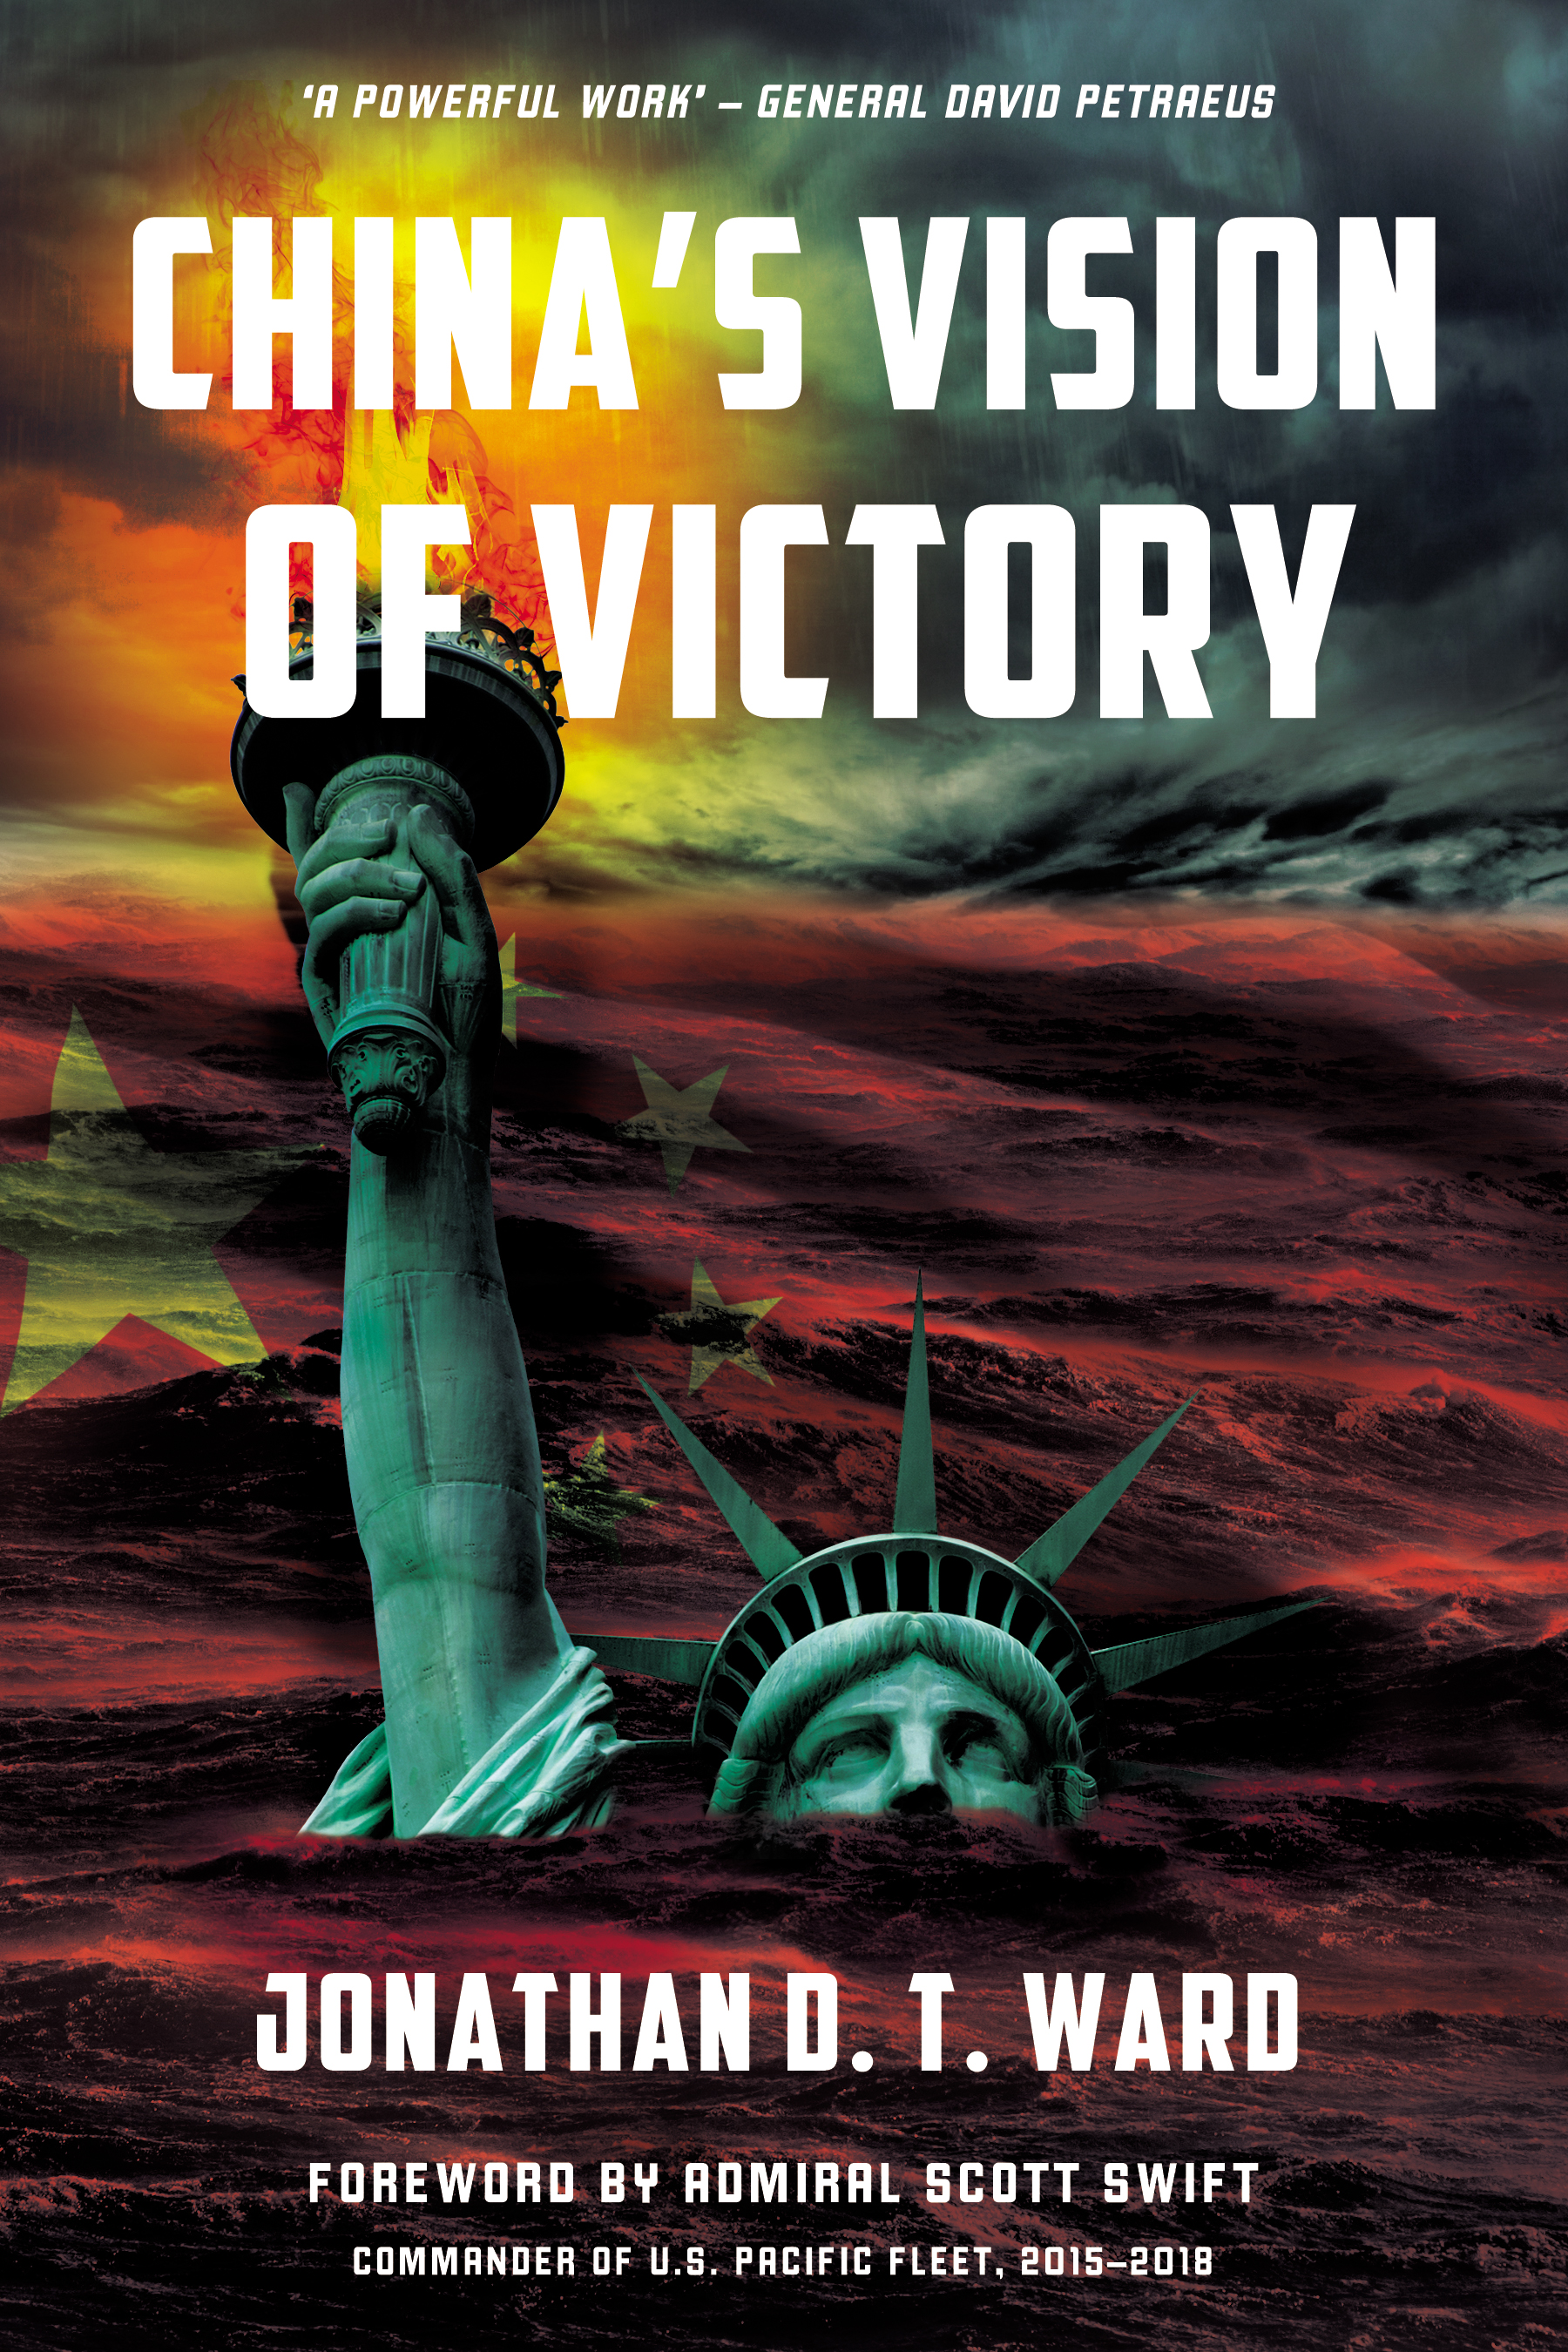 China'sVisionOfVictory no subtitle.jpg